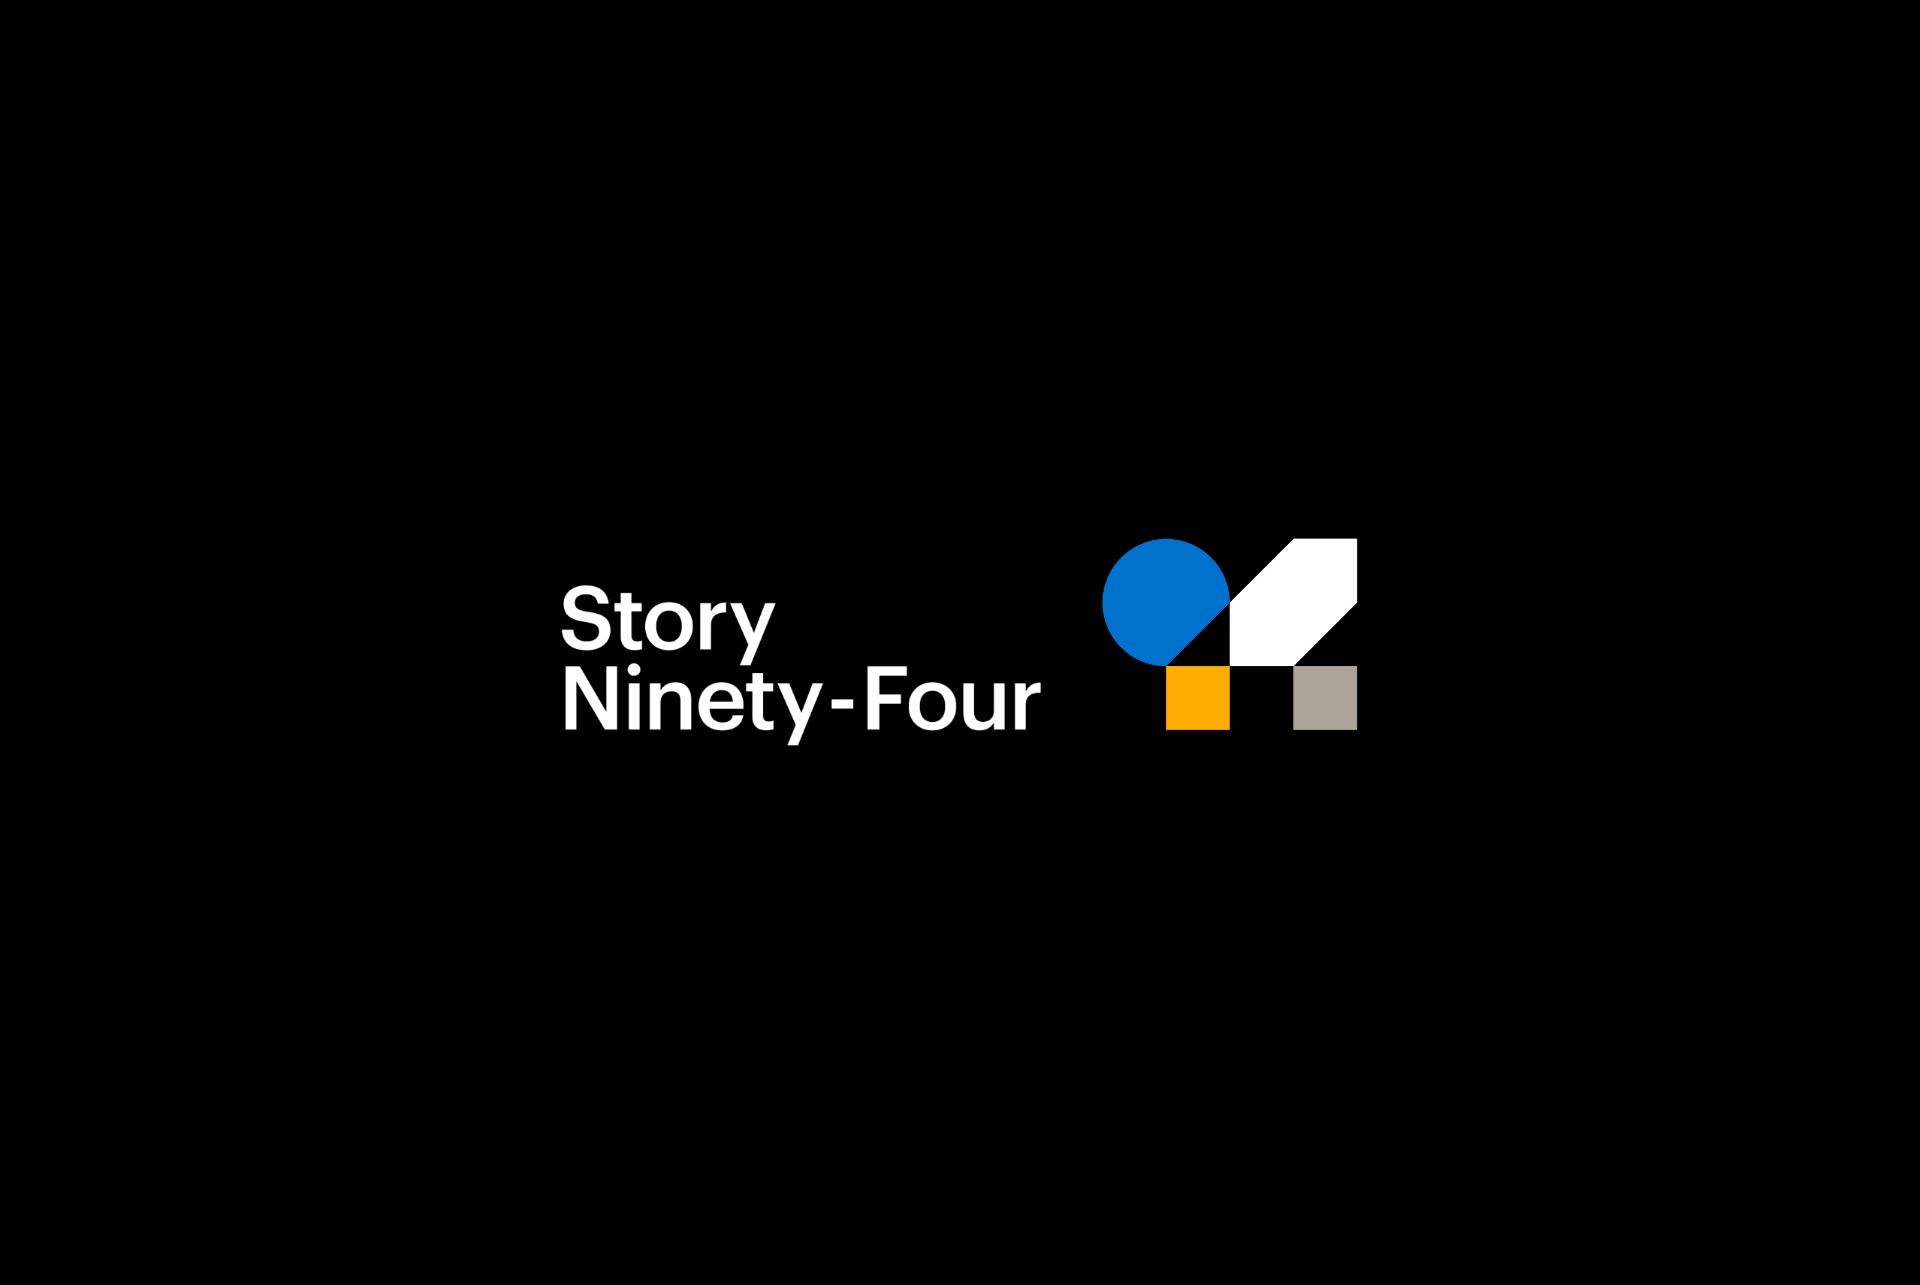 Story Ninety-Four logo on a black background.